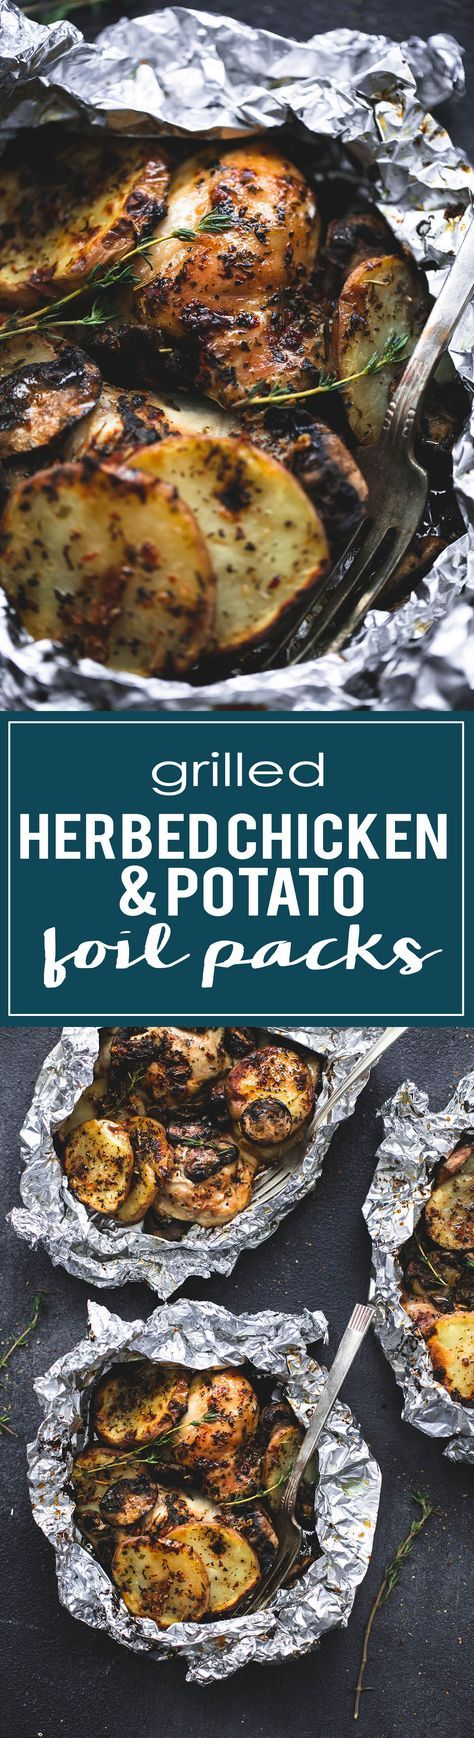 Grilled Herbed Chicken & Potato Foil Packs